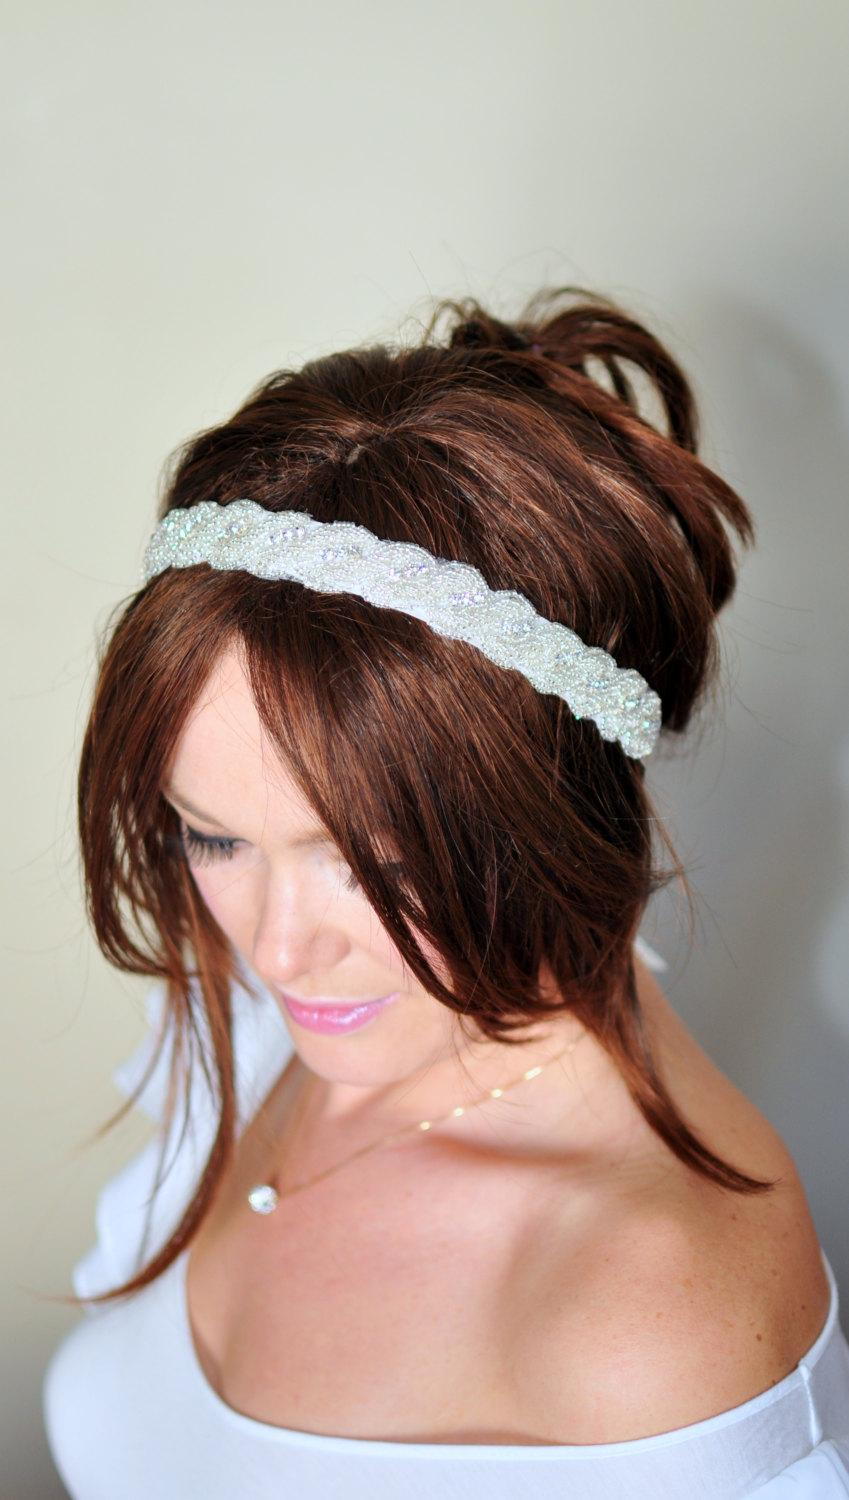 Mariage - Bridal Headband Ivory Wedding Headband Wedding Rhinestone Crystal Bridal Hair Band Vintage Head wrap Romantic Girly